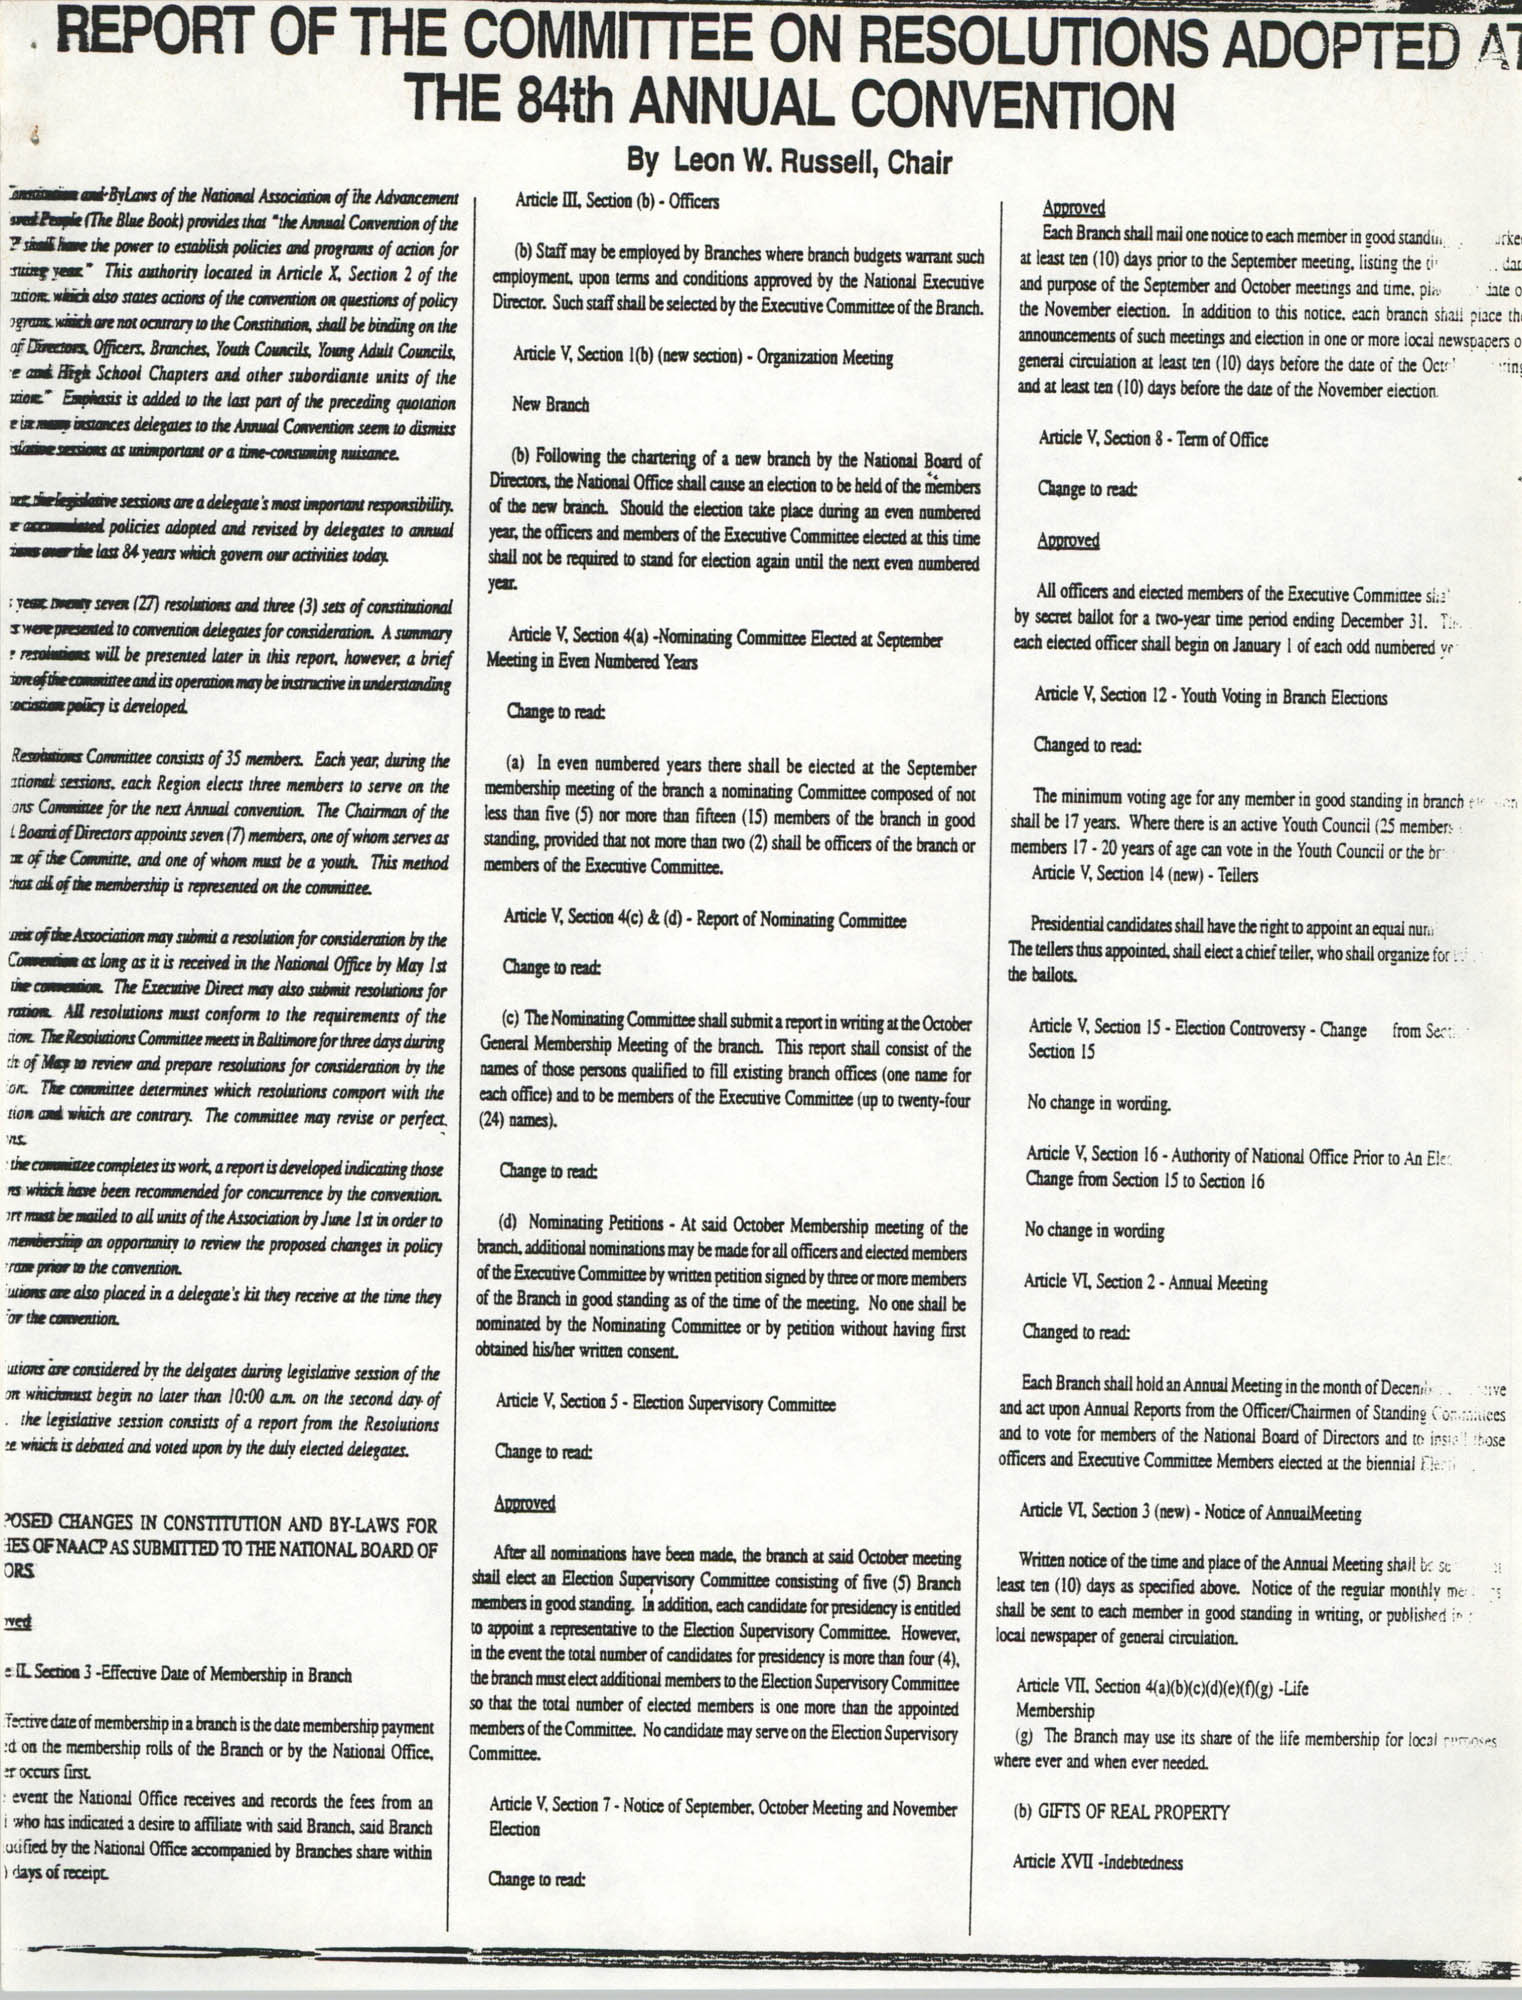 Report of the Committee on Resolutions Adopted at the 84th Annual Convention, Page 1